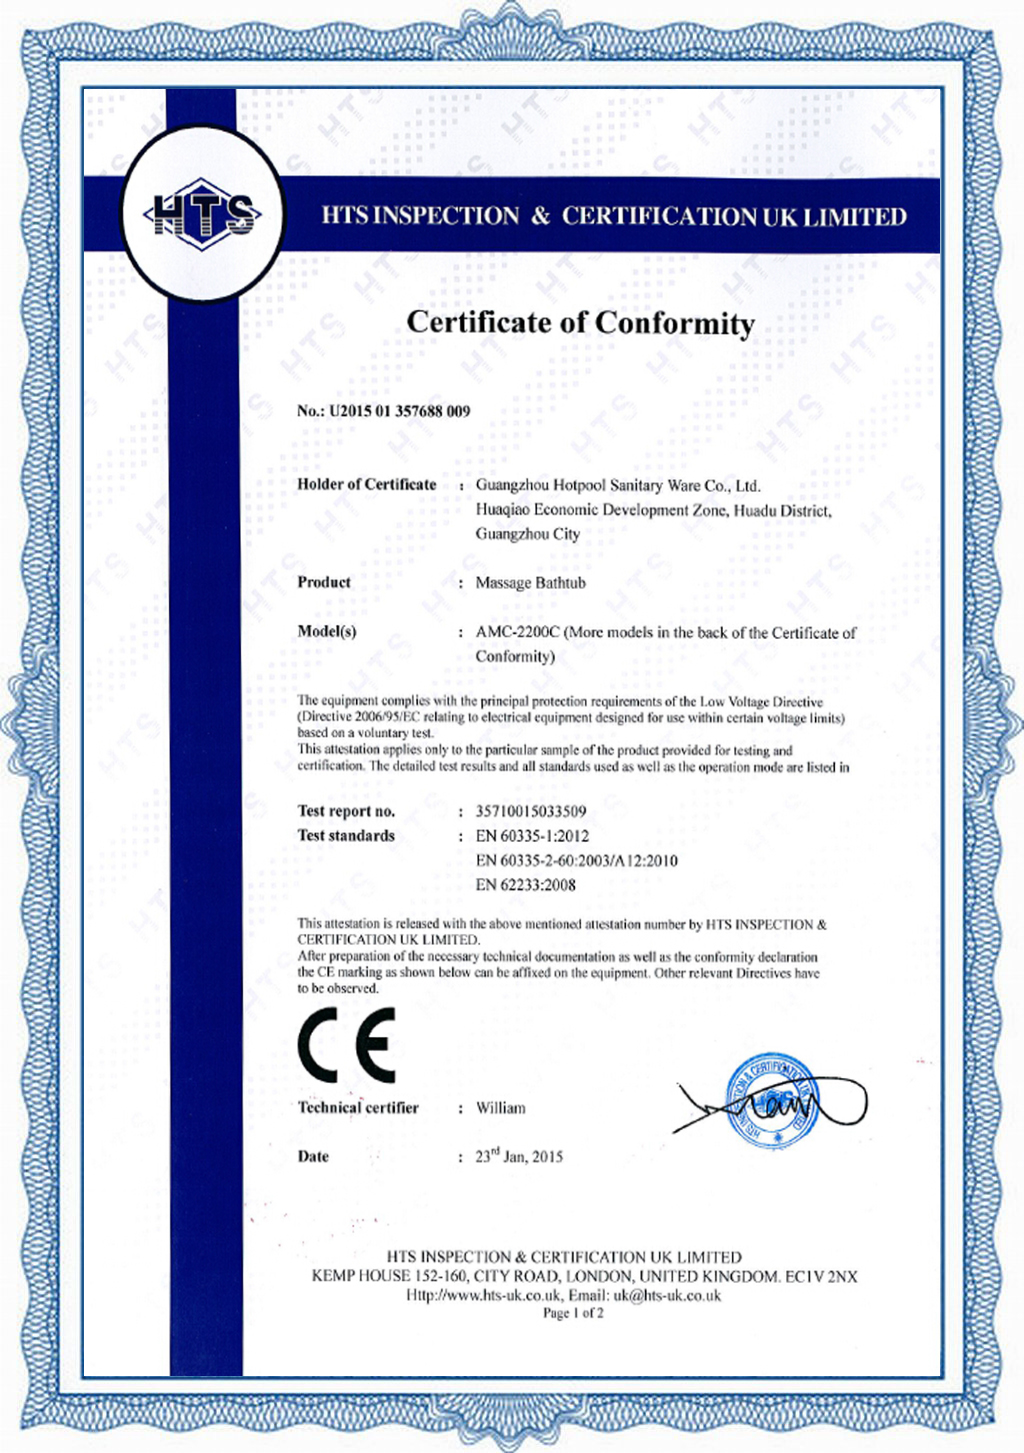 Certification in 2012 all hot tubs achieved saa certificate for australian market in 2010 control system achieved ccc approval xflitez Image collections